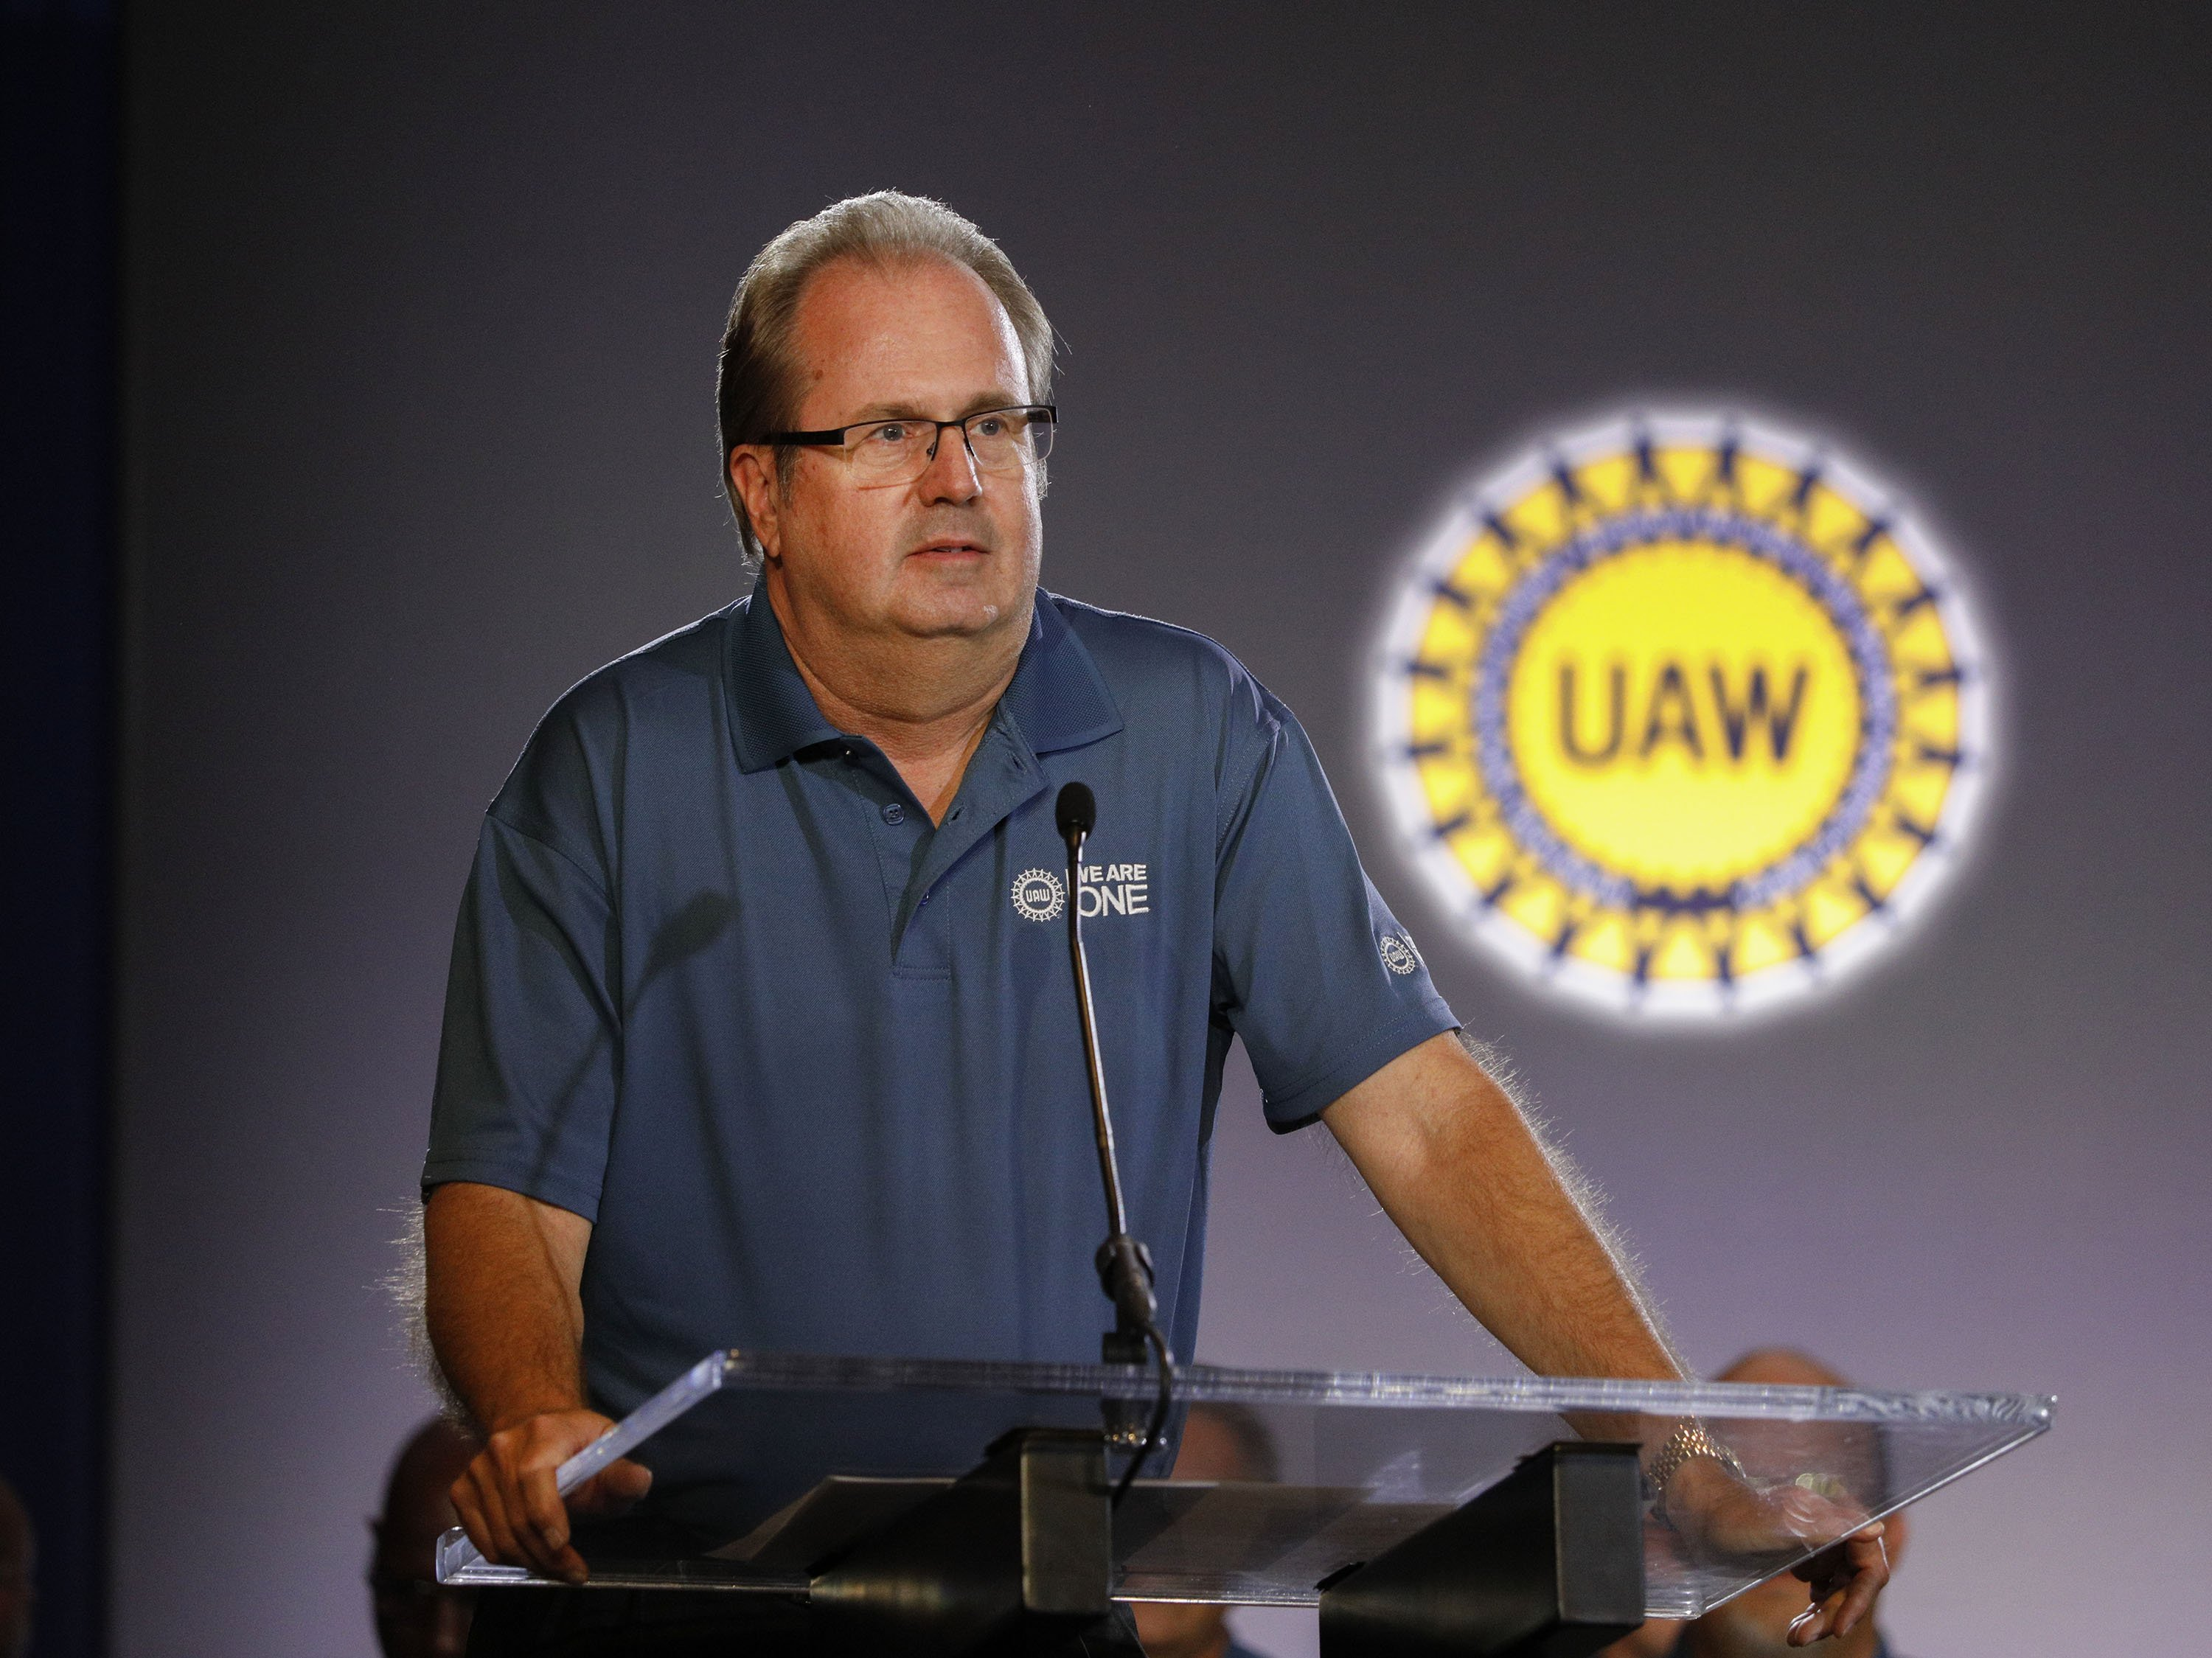 Embattled UAW president resigns amid internal charges of misusing union funds